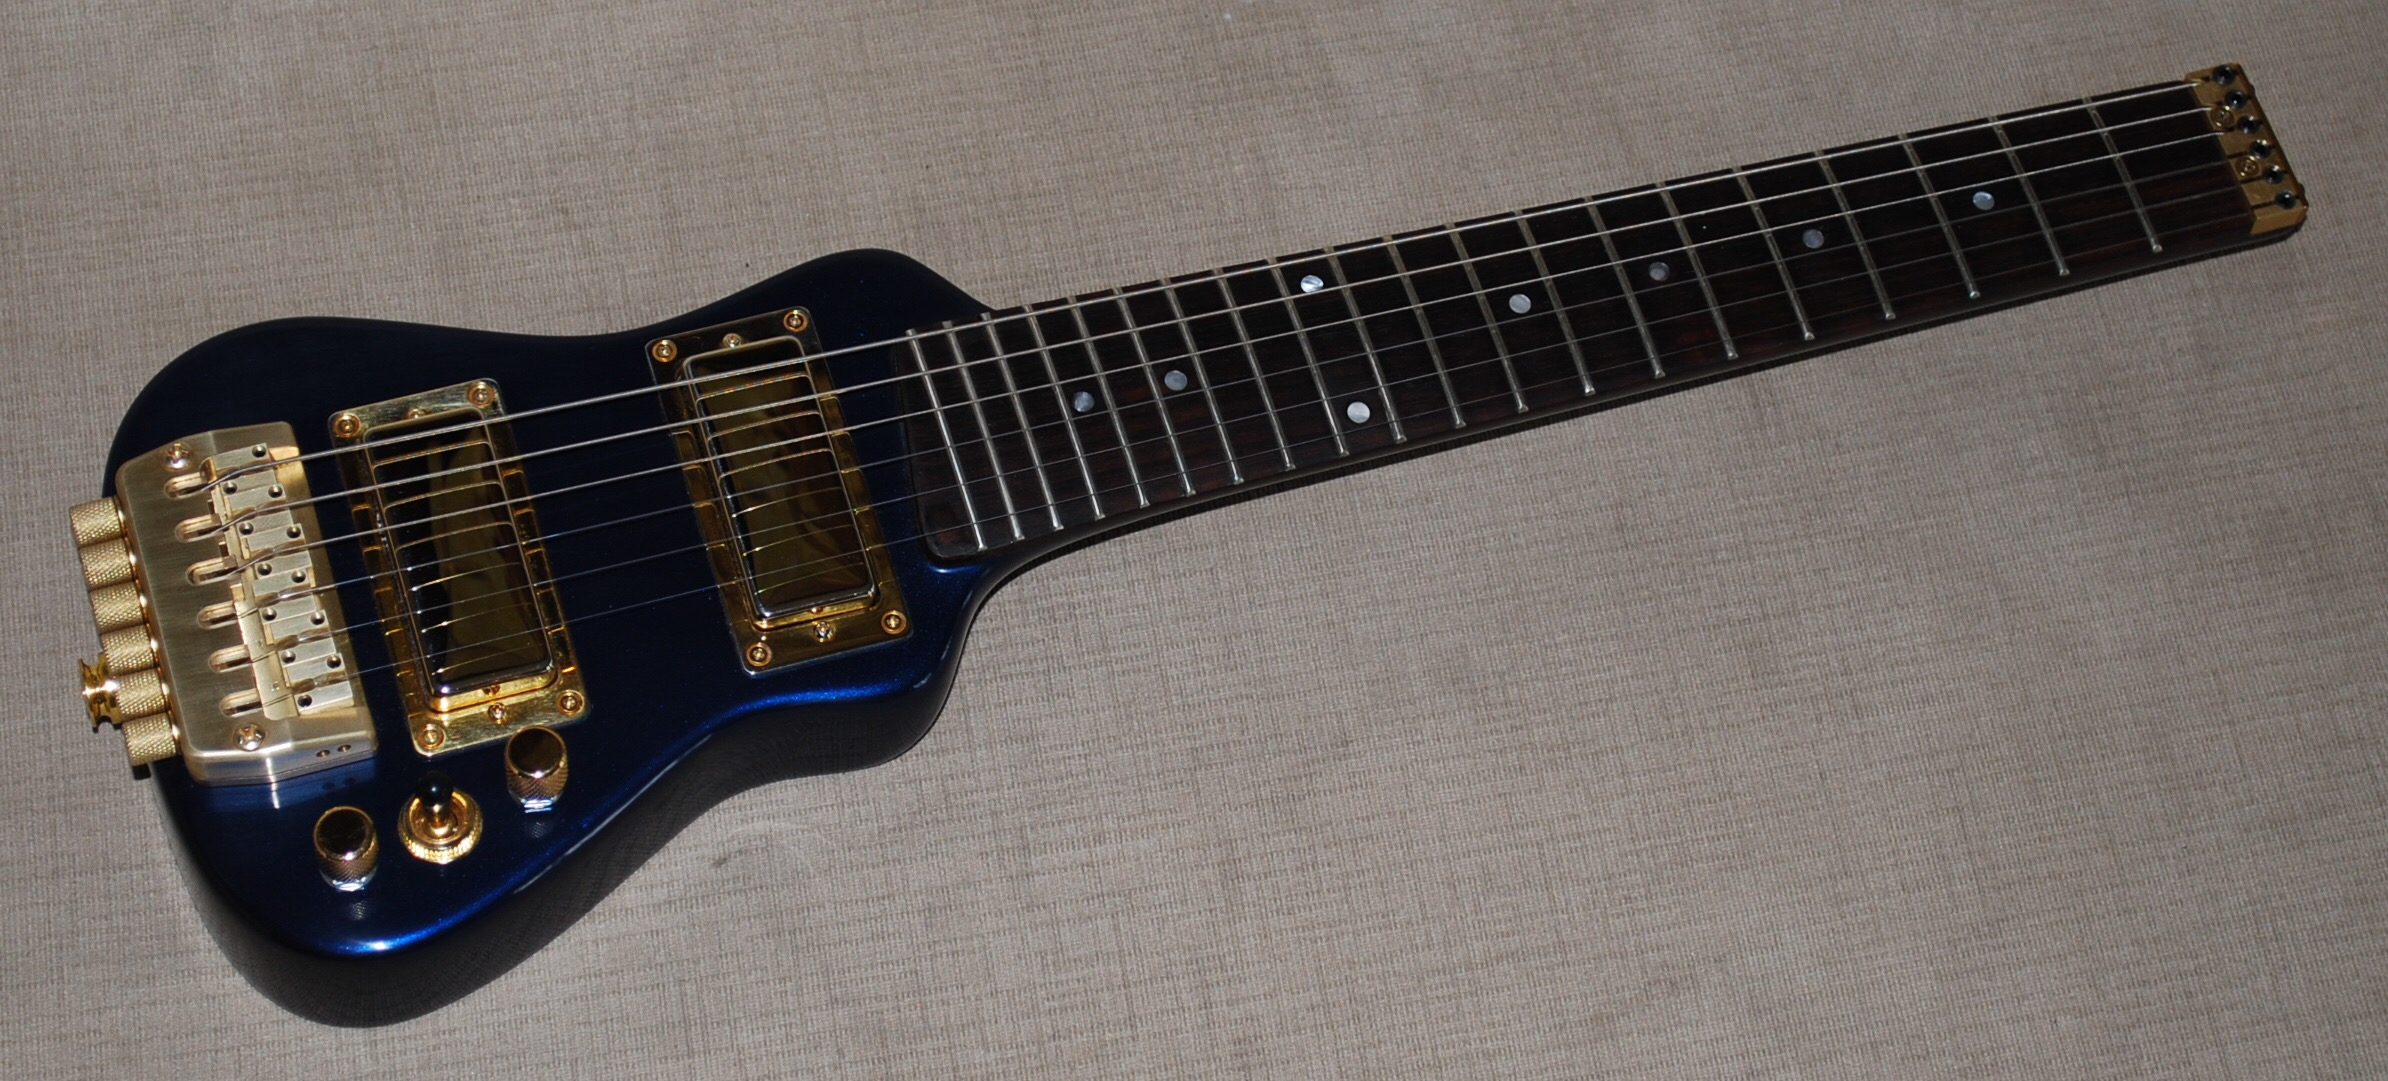 Lap Axe The Ultimate Travel Guitar